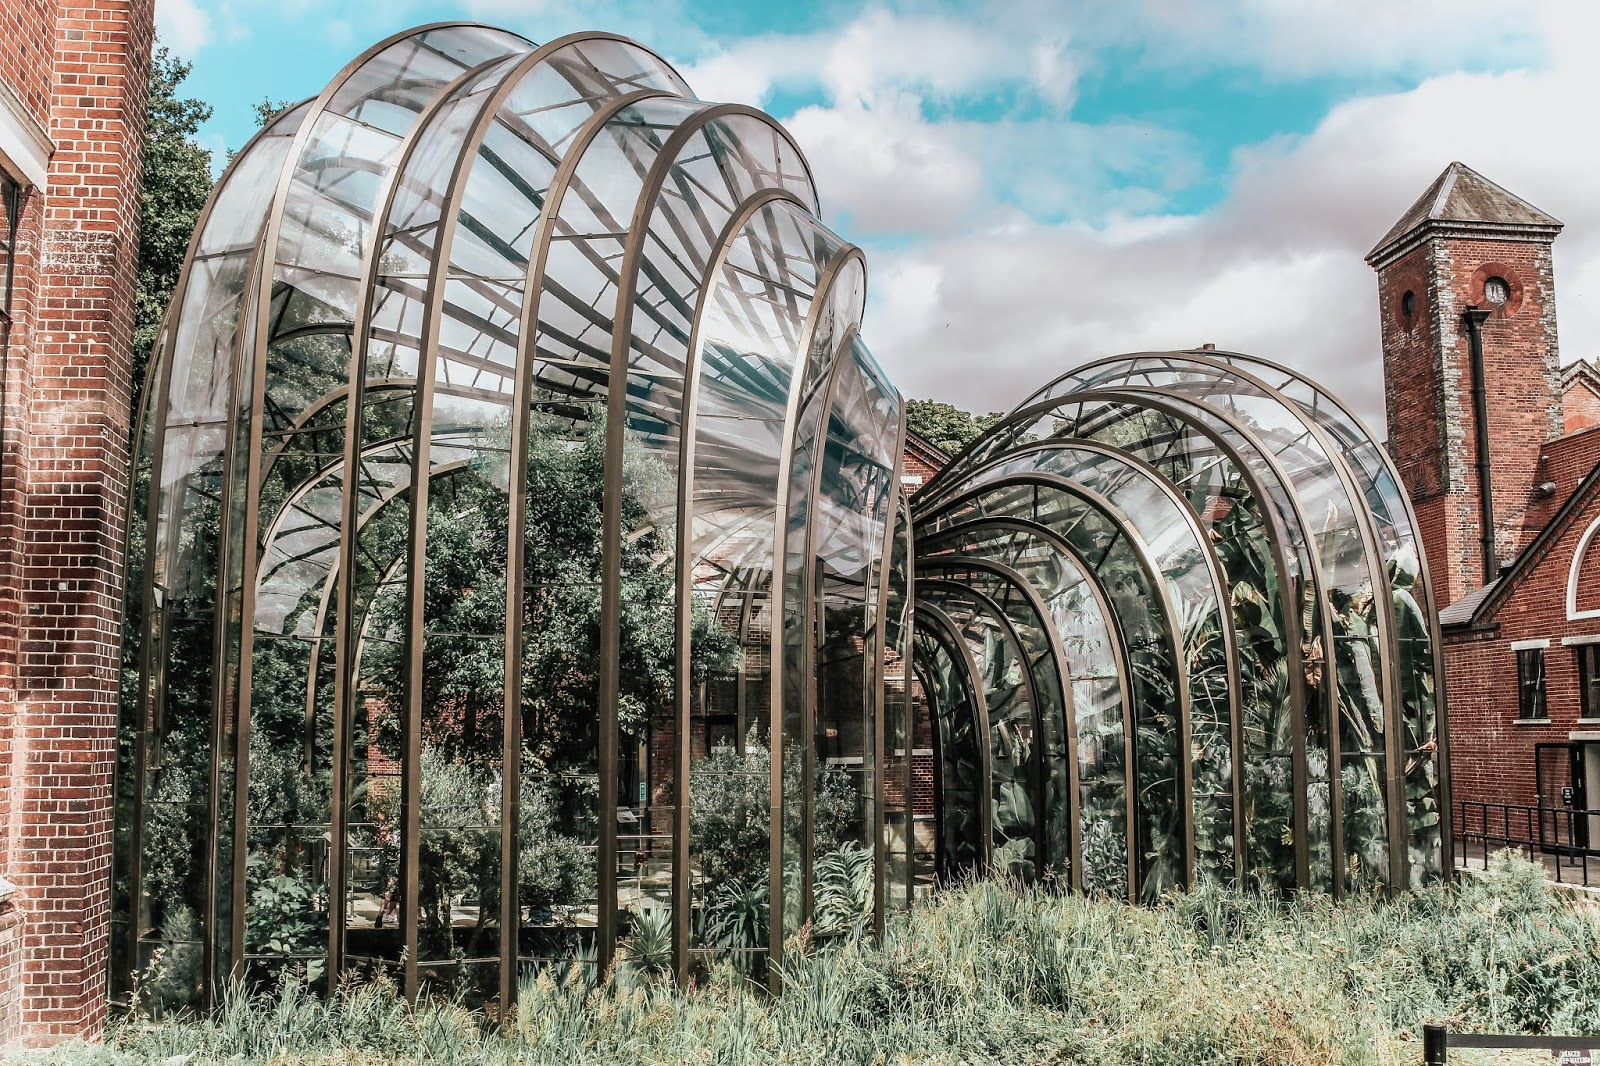 Bombay Sapphire Twin Glasshouses Travel Photography